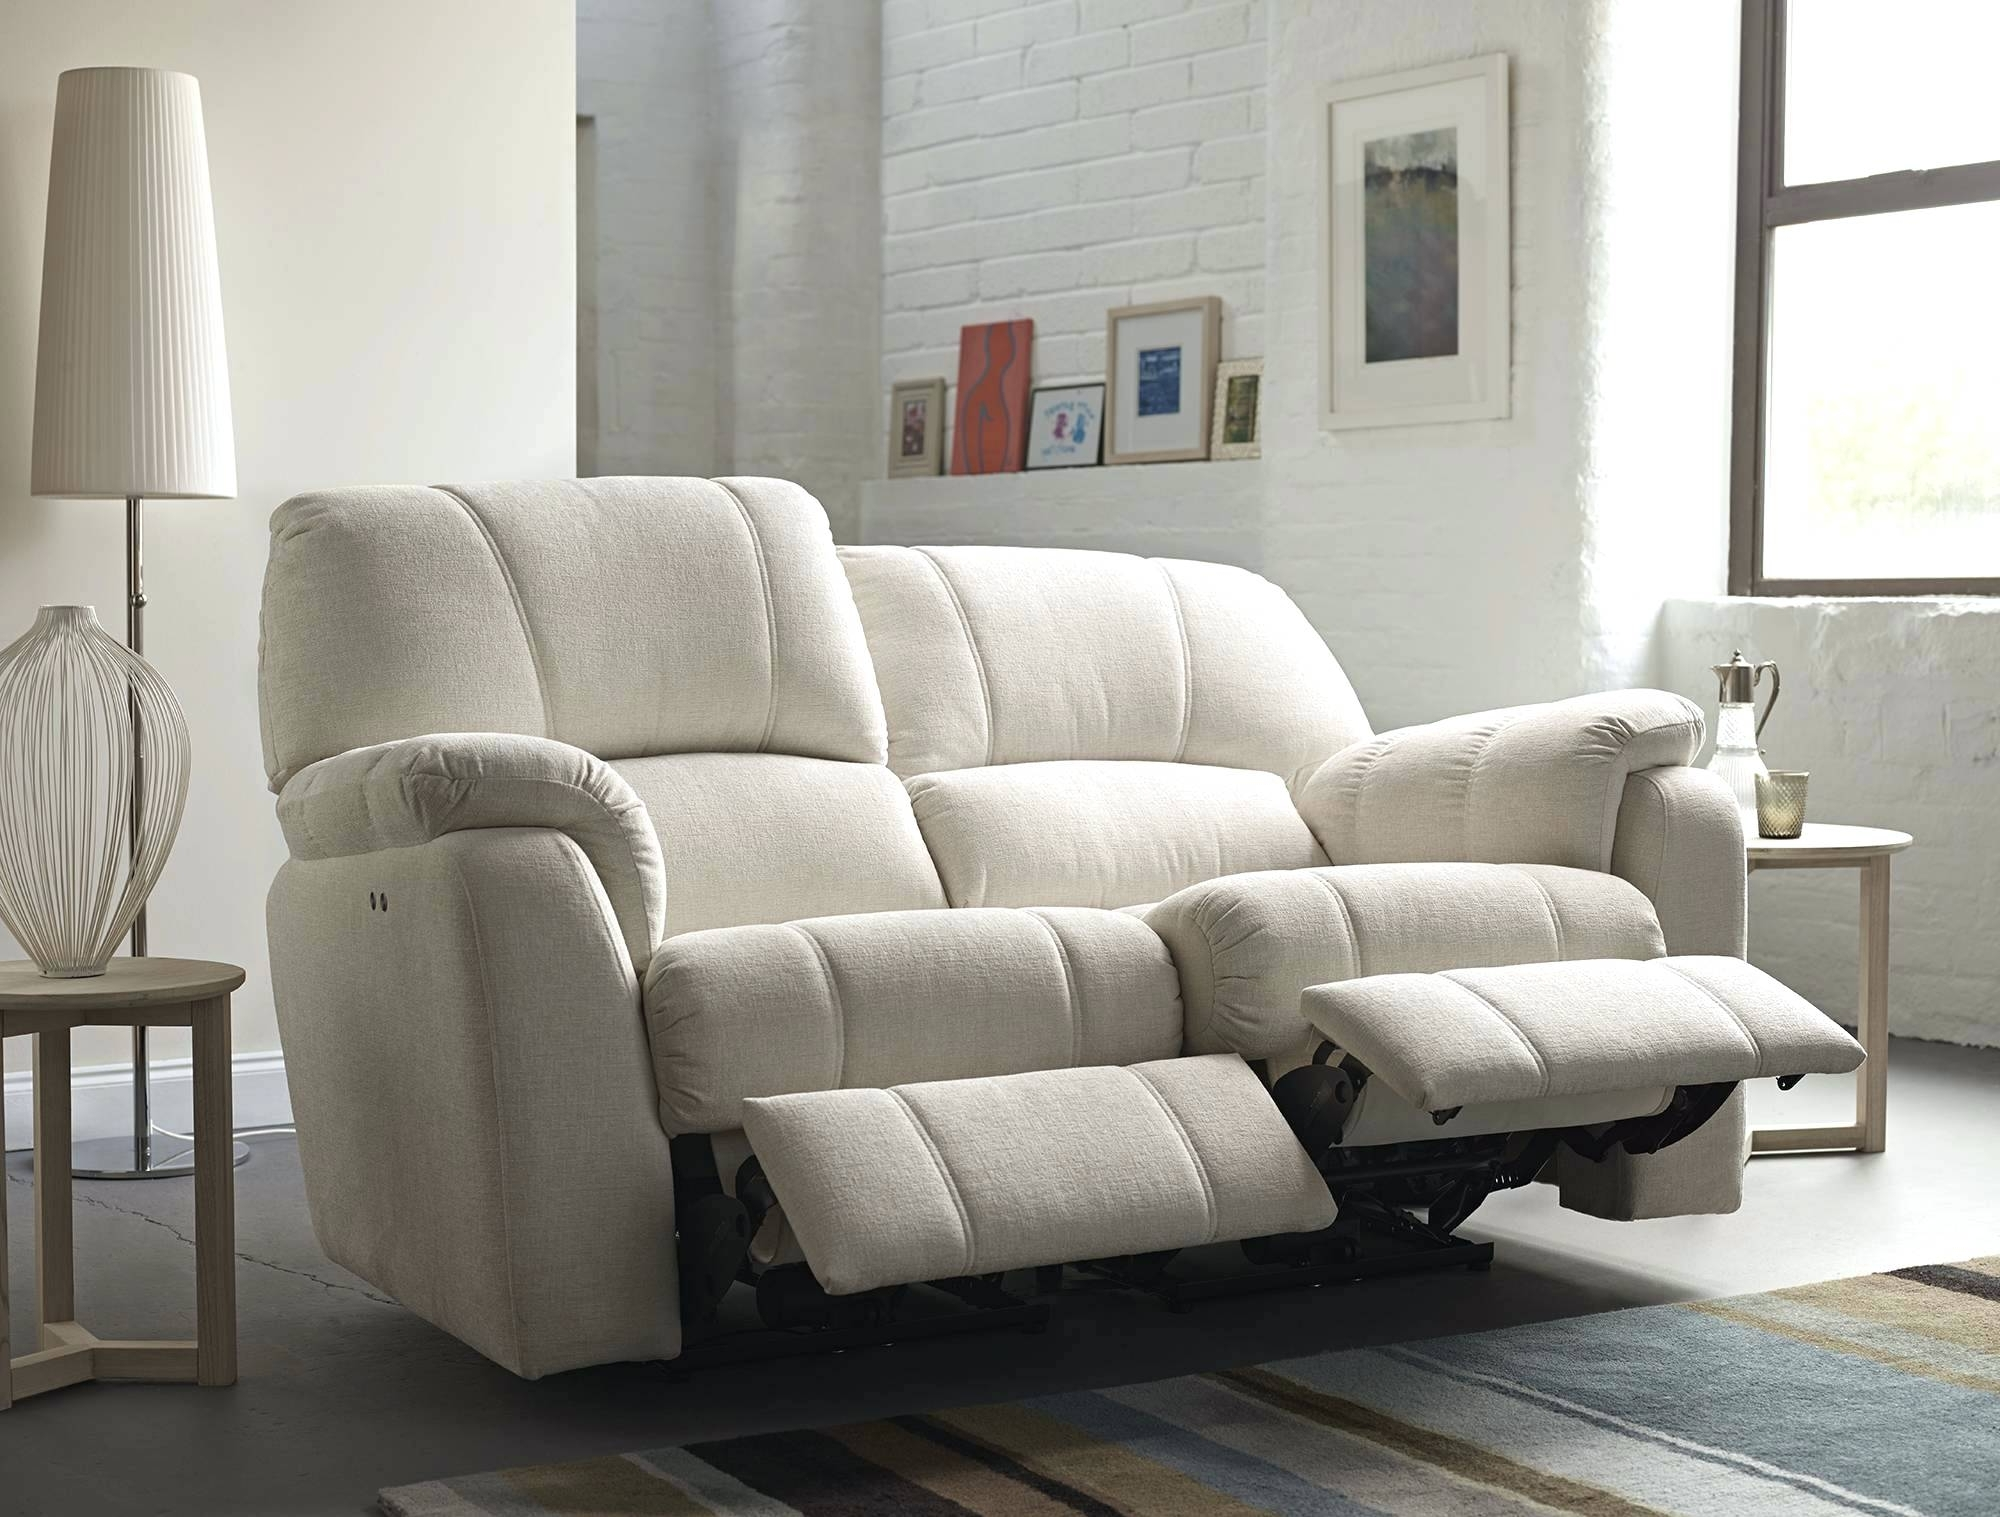 Popular Recliners Chairs & Sofa : Fresh 39 Remarkable 2 Seater Leather Within 2 Seat Recliner Sofas (View 14 of 15)